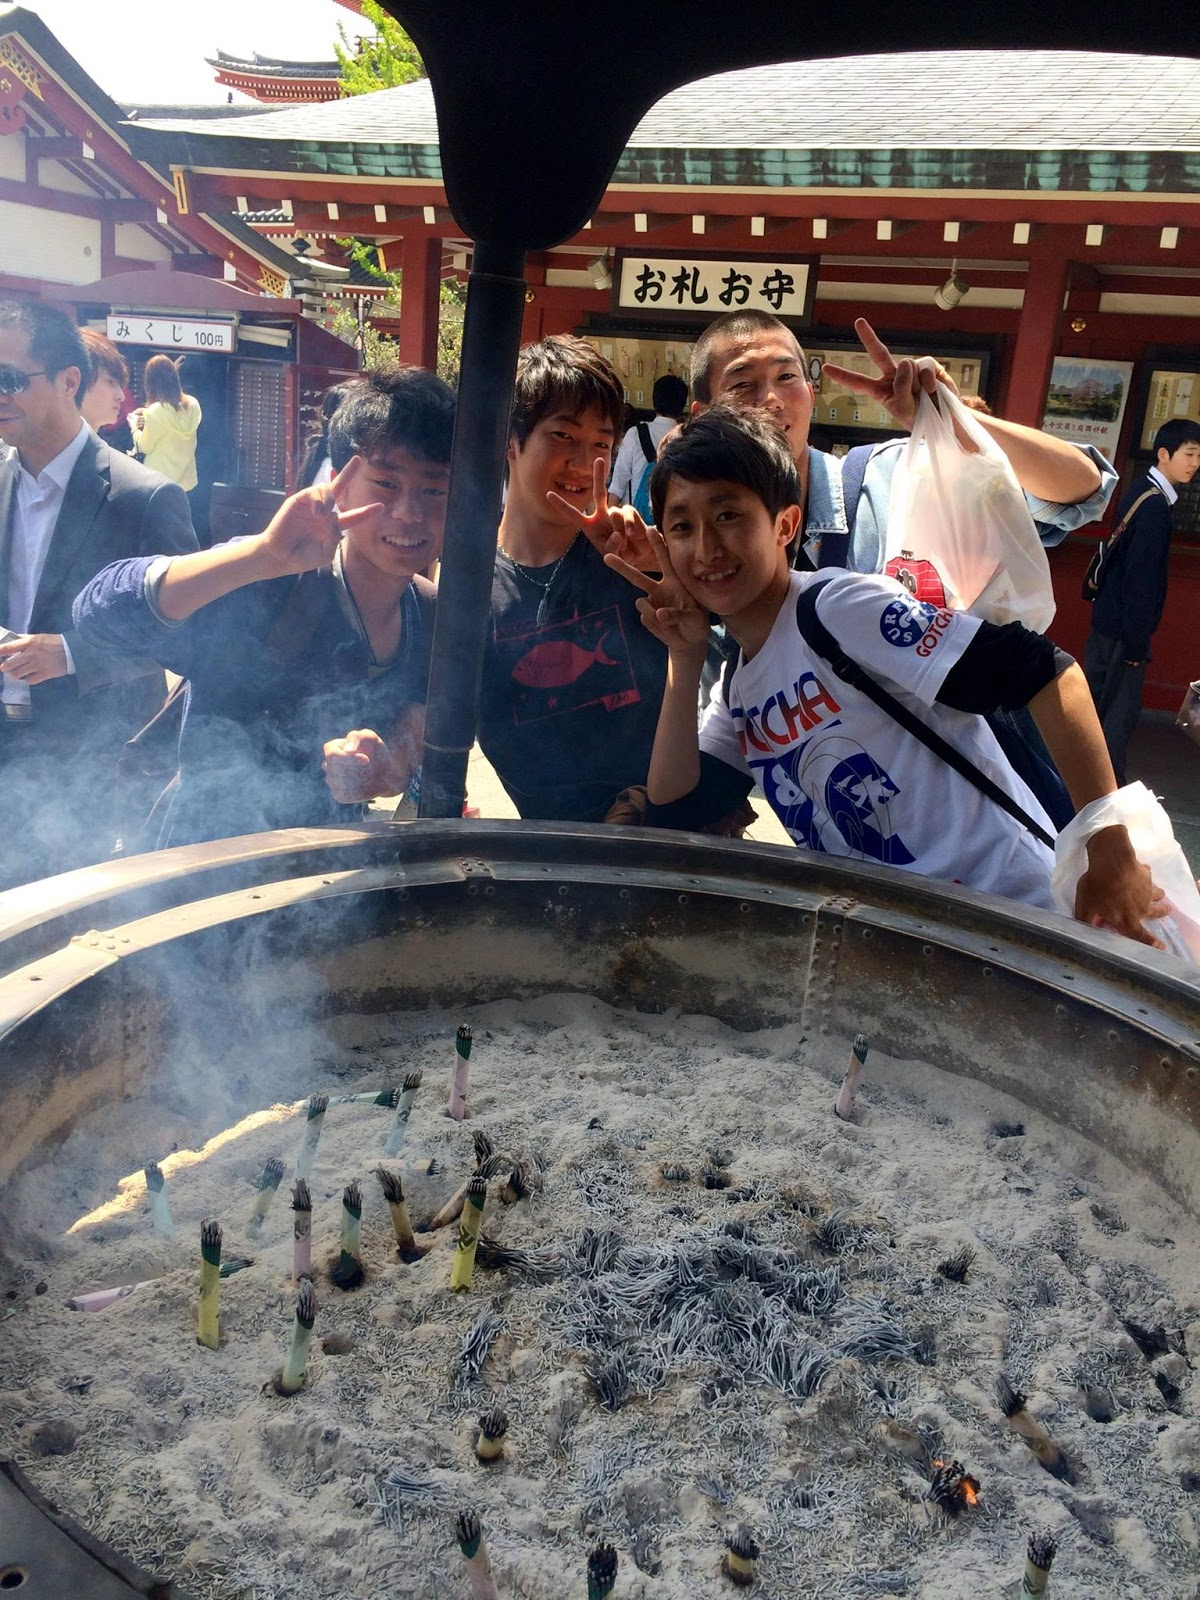 Teenage students in front of a large cauldron of incense at Senso-ji temple. People waft the fumes over their bodies to bestow good health - April 2015